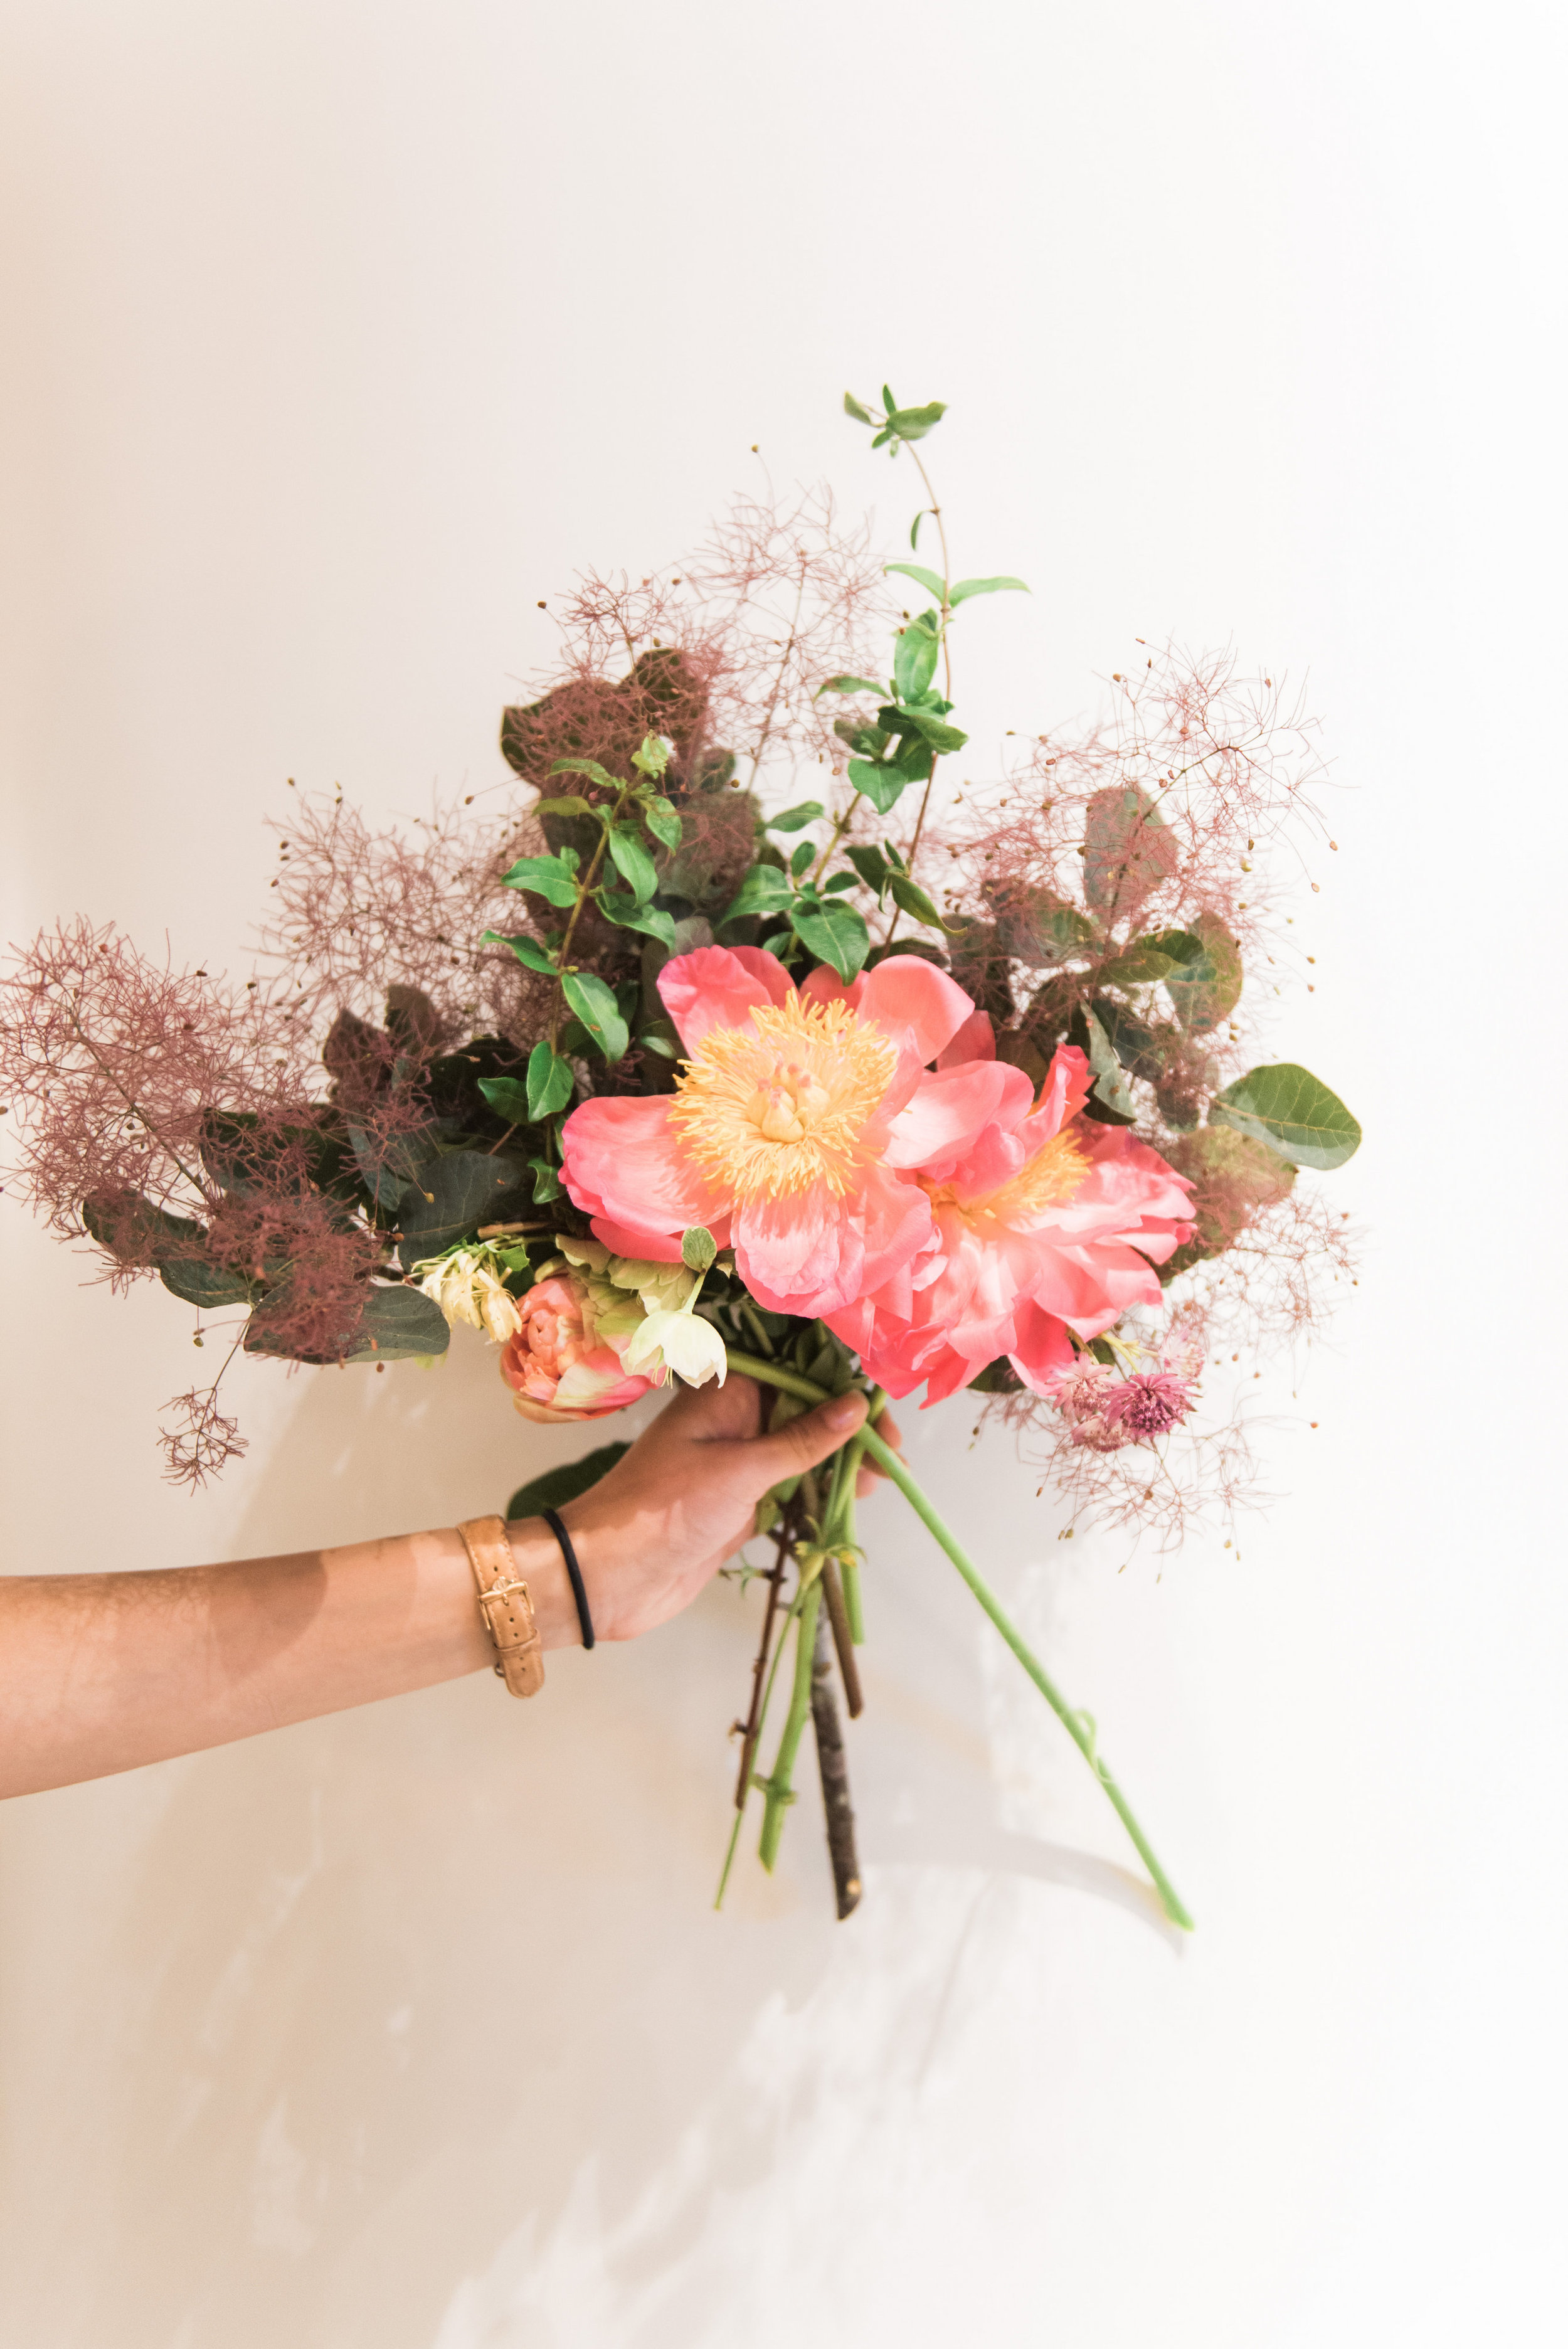 Our floral recipe - 1 to 3 coral charm peonies depending on the size of your vessel3 stems of peach ranunculus3 stems of fritillaria2 stems of green hellebores2 pink french tulips2 stems of mauve astrantia2 stems of mauve lisianthusforaged smokebush, nandina, oak, and eleagnus